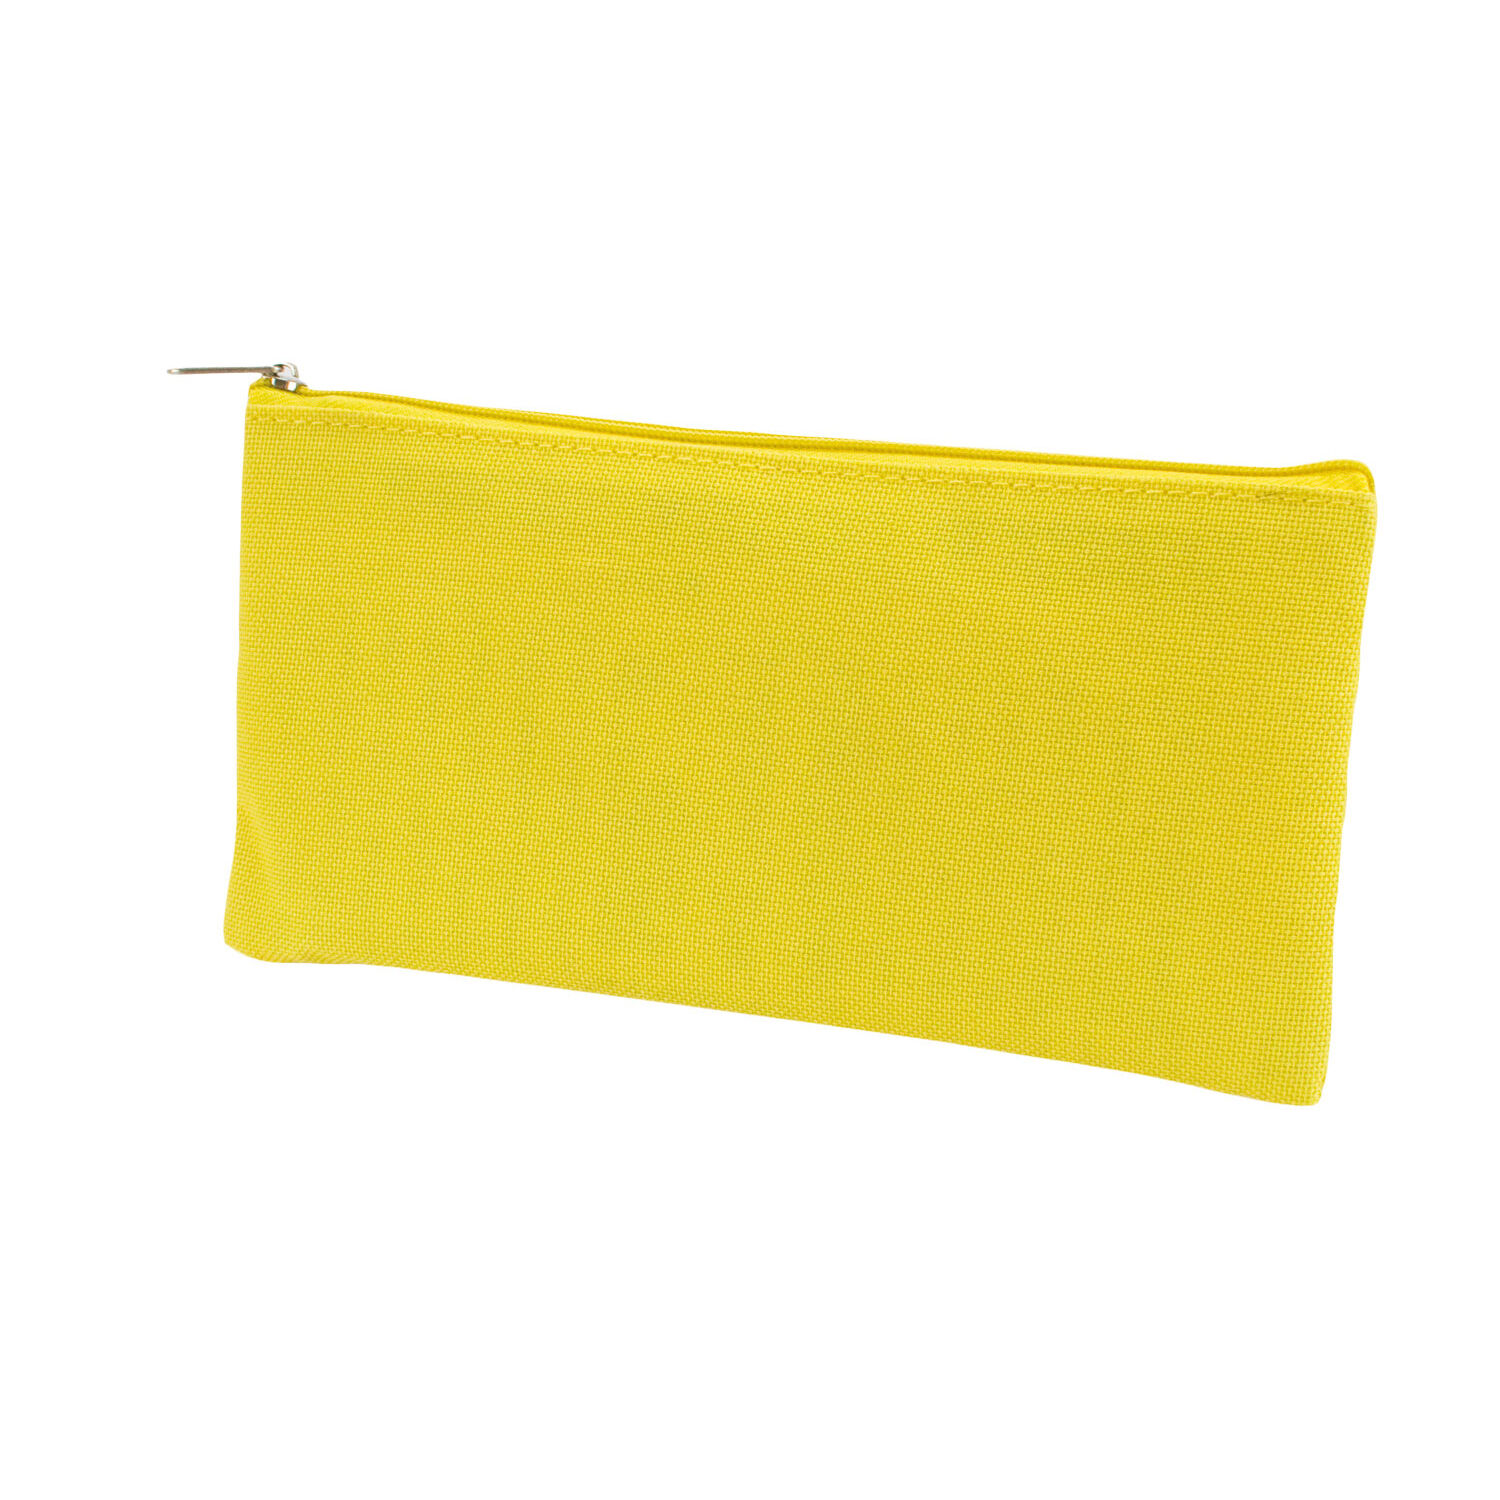 Large Pencil Cases - Yellow